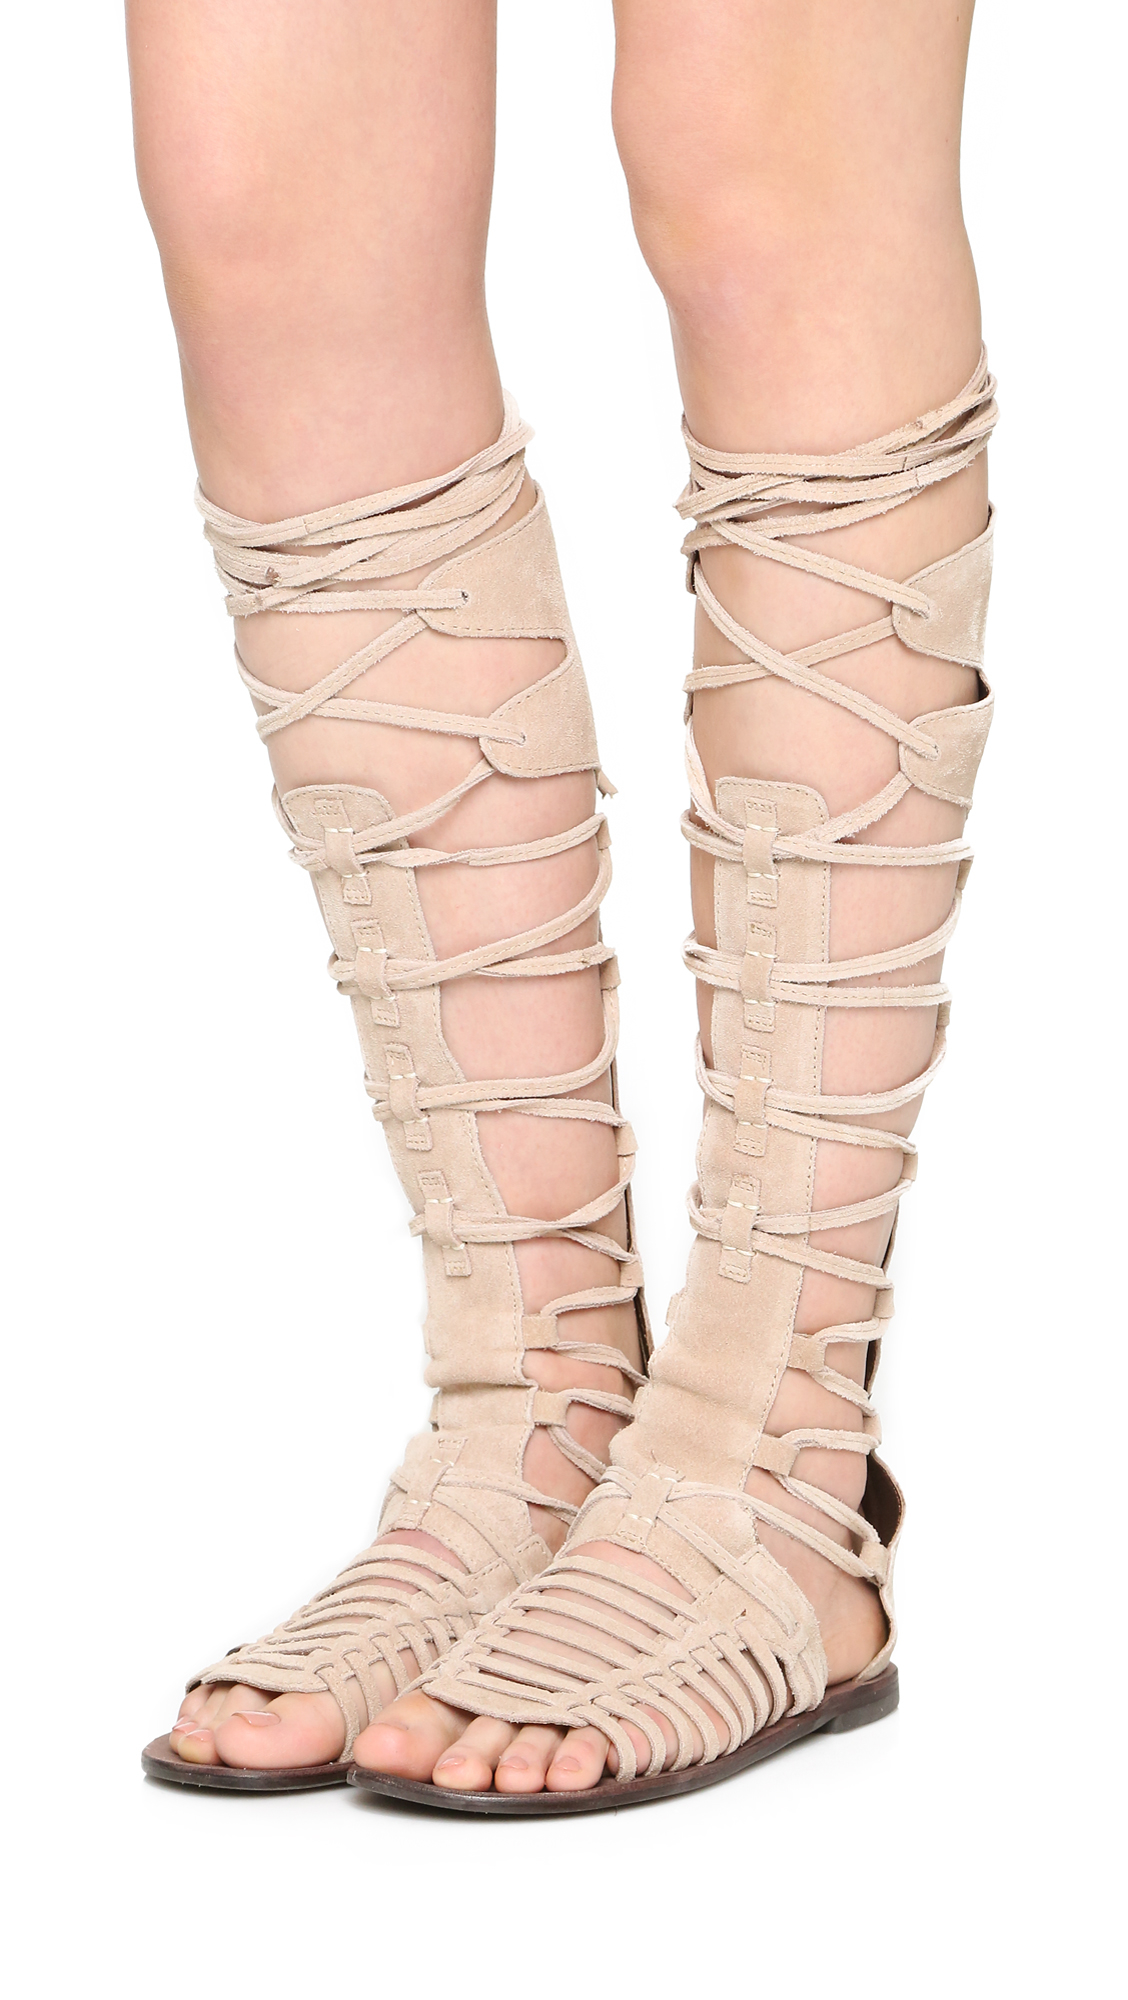 f009581d8df Gallery. Previously sold at  Shopbop · Women s Gladiator Sandals Women s Free  People ...